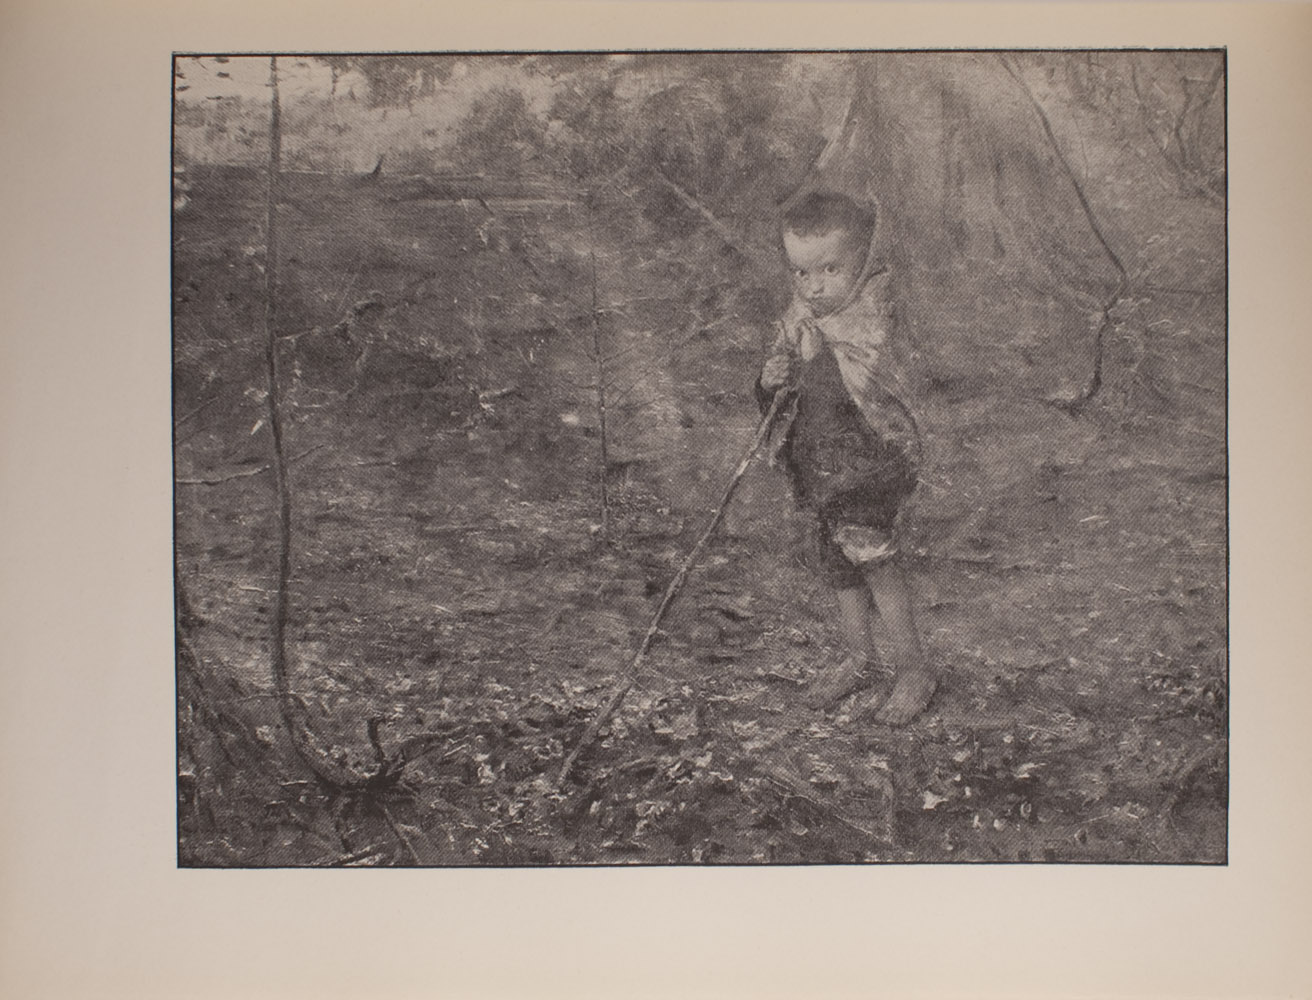 The image is of a young boy in a wooded area The boy stands barefoot holding a long stick that extends diagonally to the left He is wearing pants which are rolled up to his knees and appears to have a scarf or blanket wrapped around his shoulders and the back of his head The boy faces the viewer The image is horizontally displayed